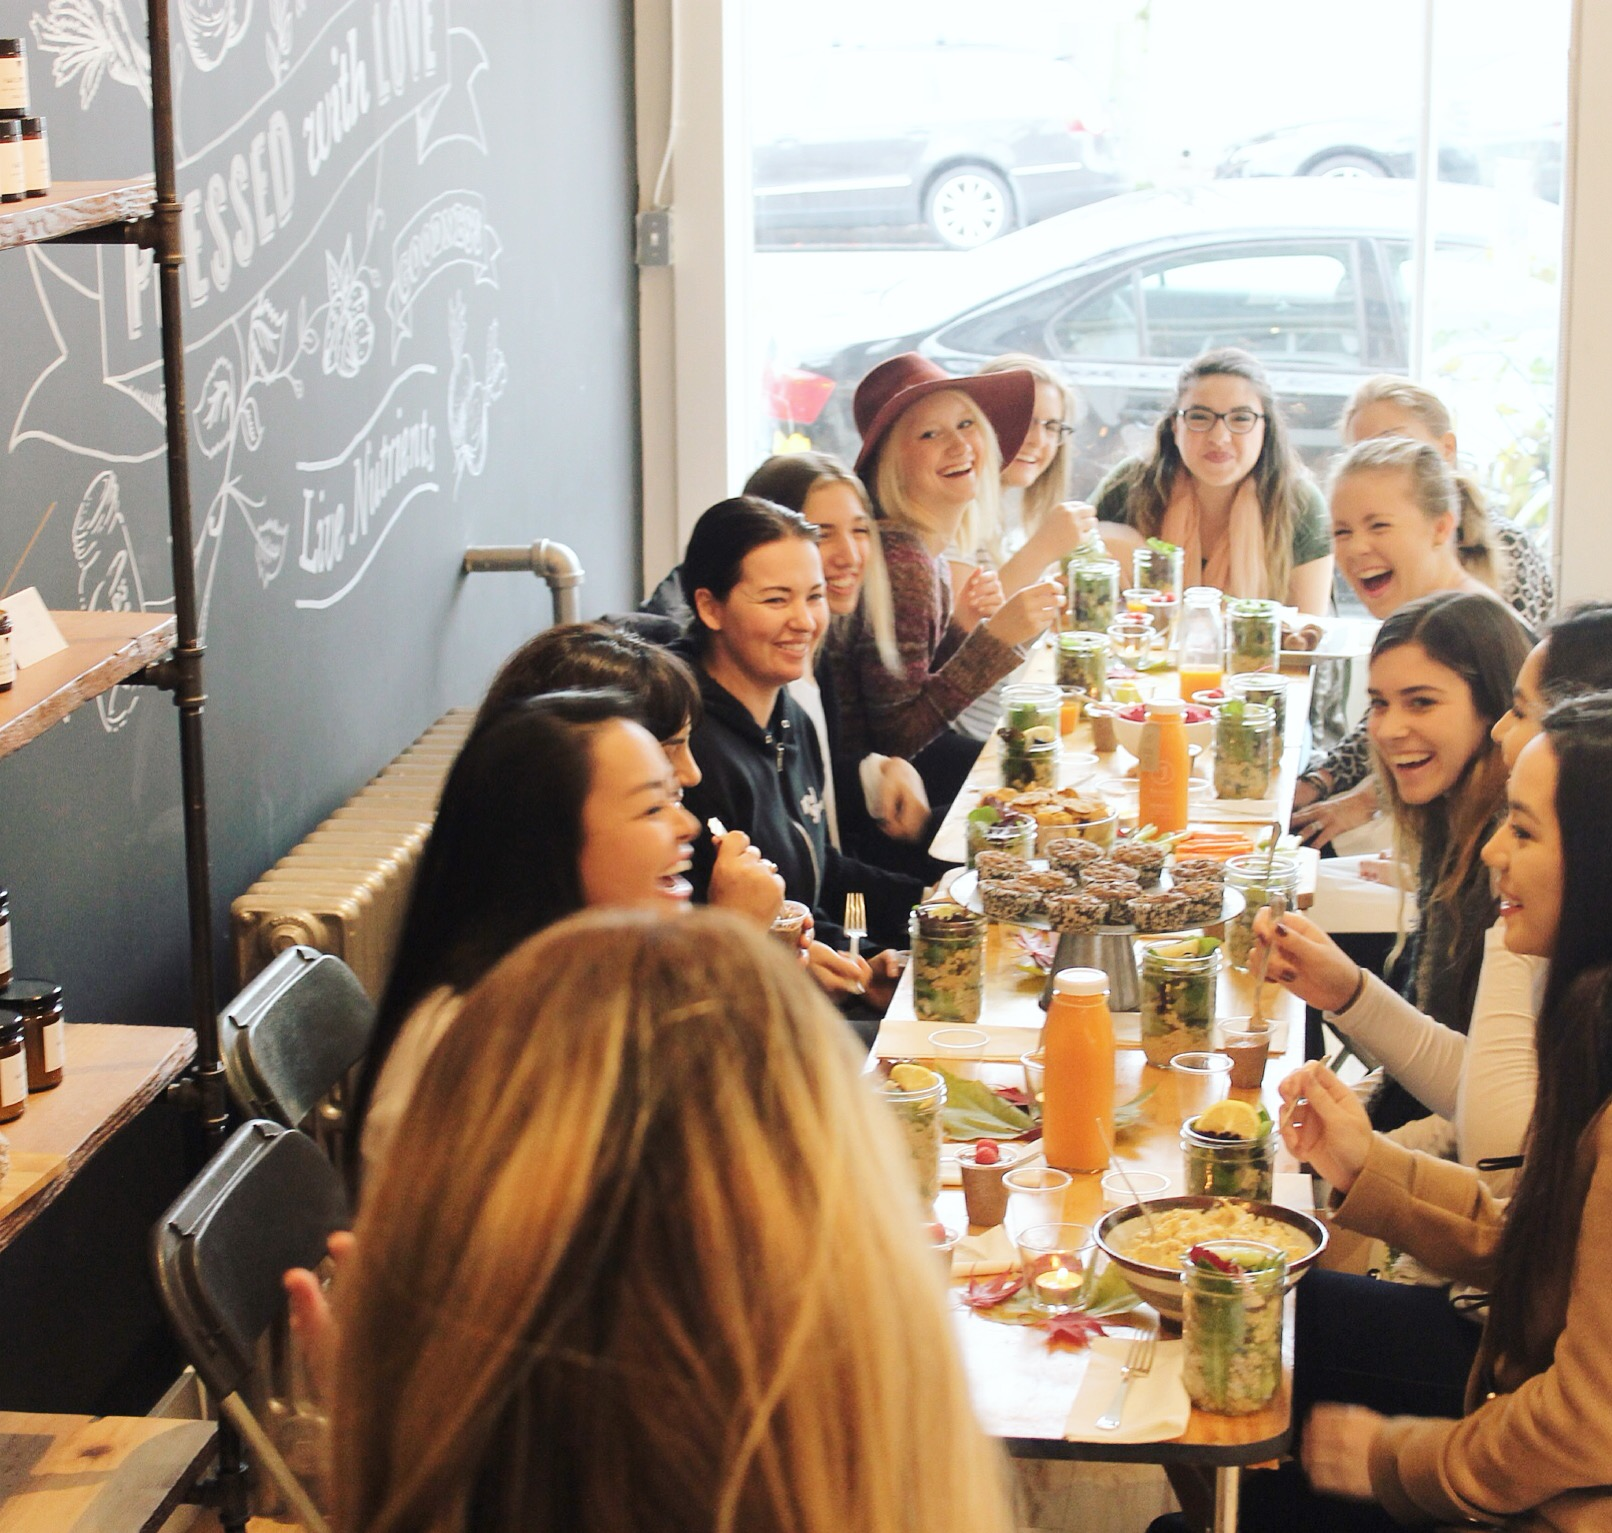 Plant-Based Brunch at The Juicery Co!